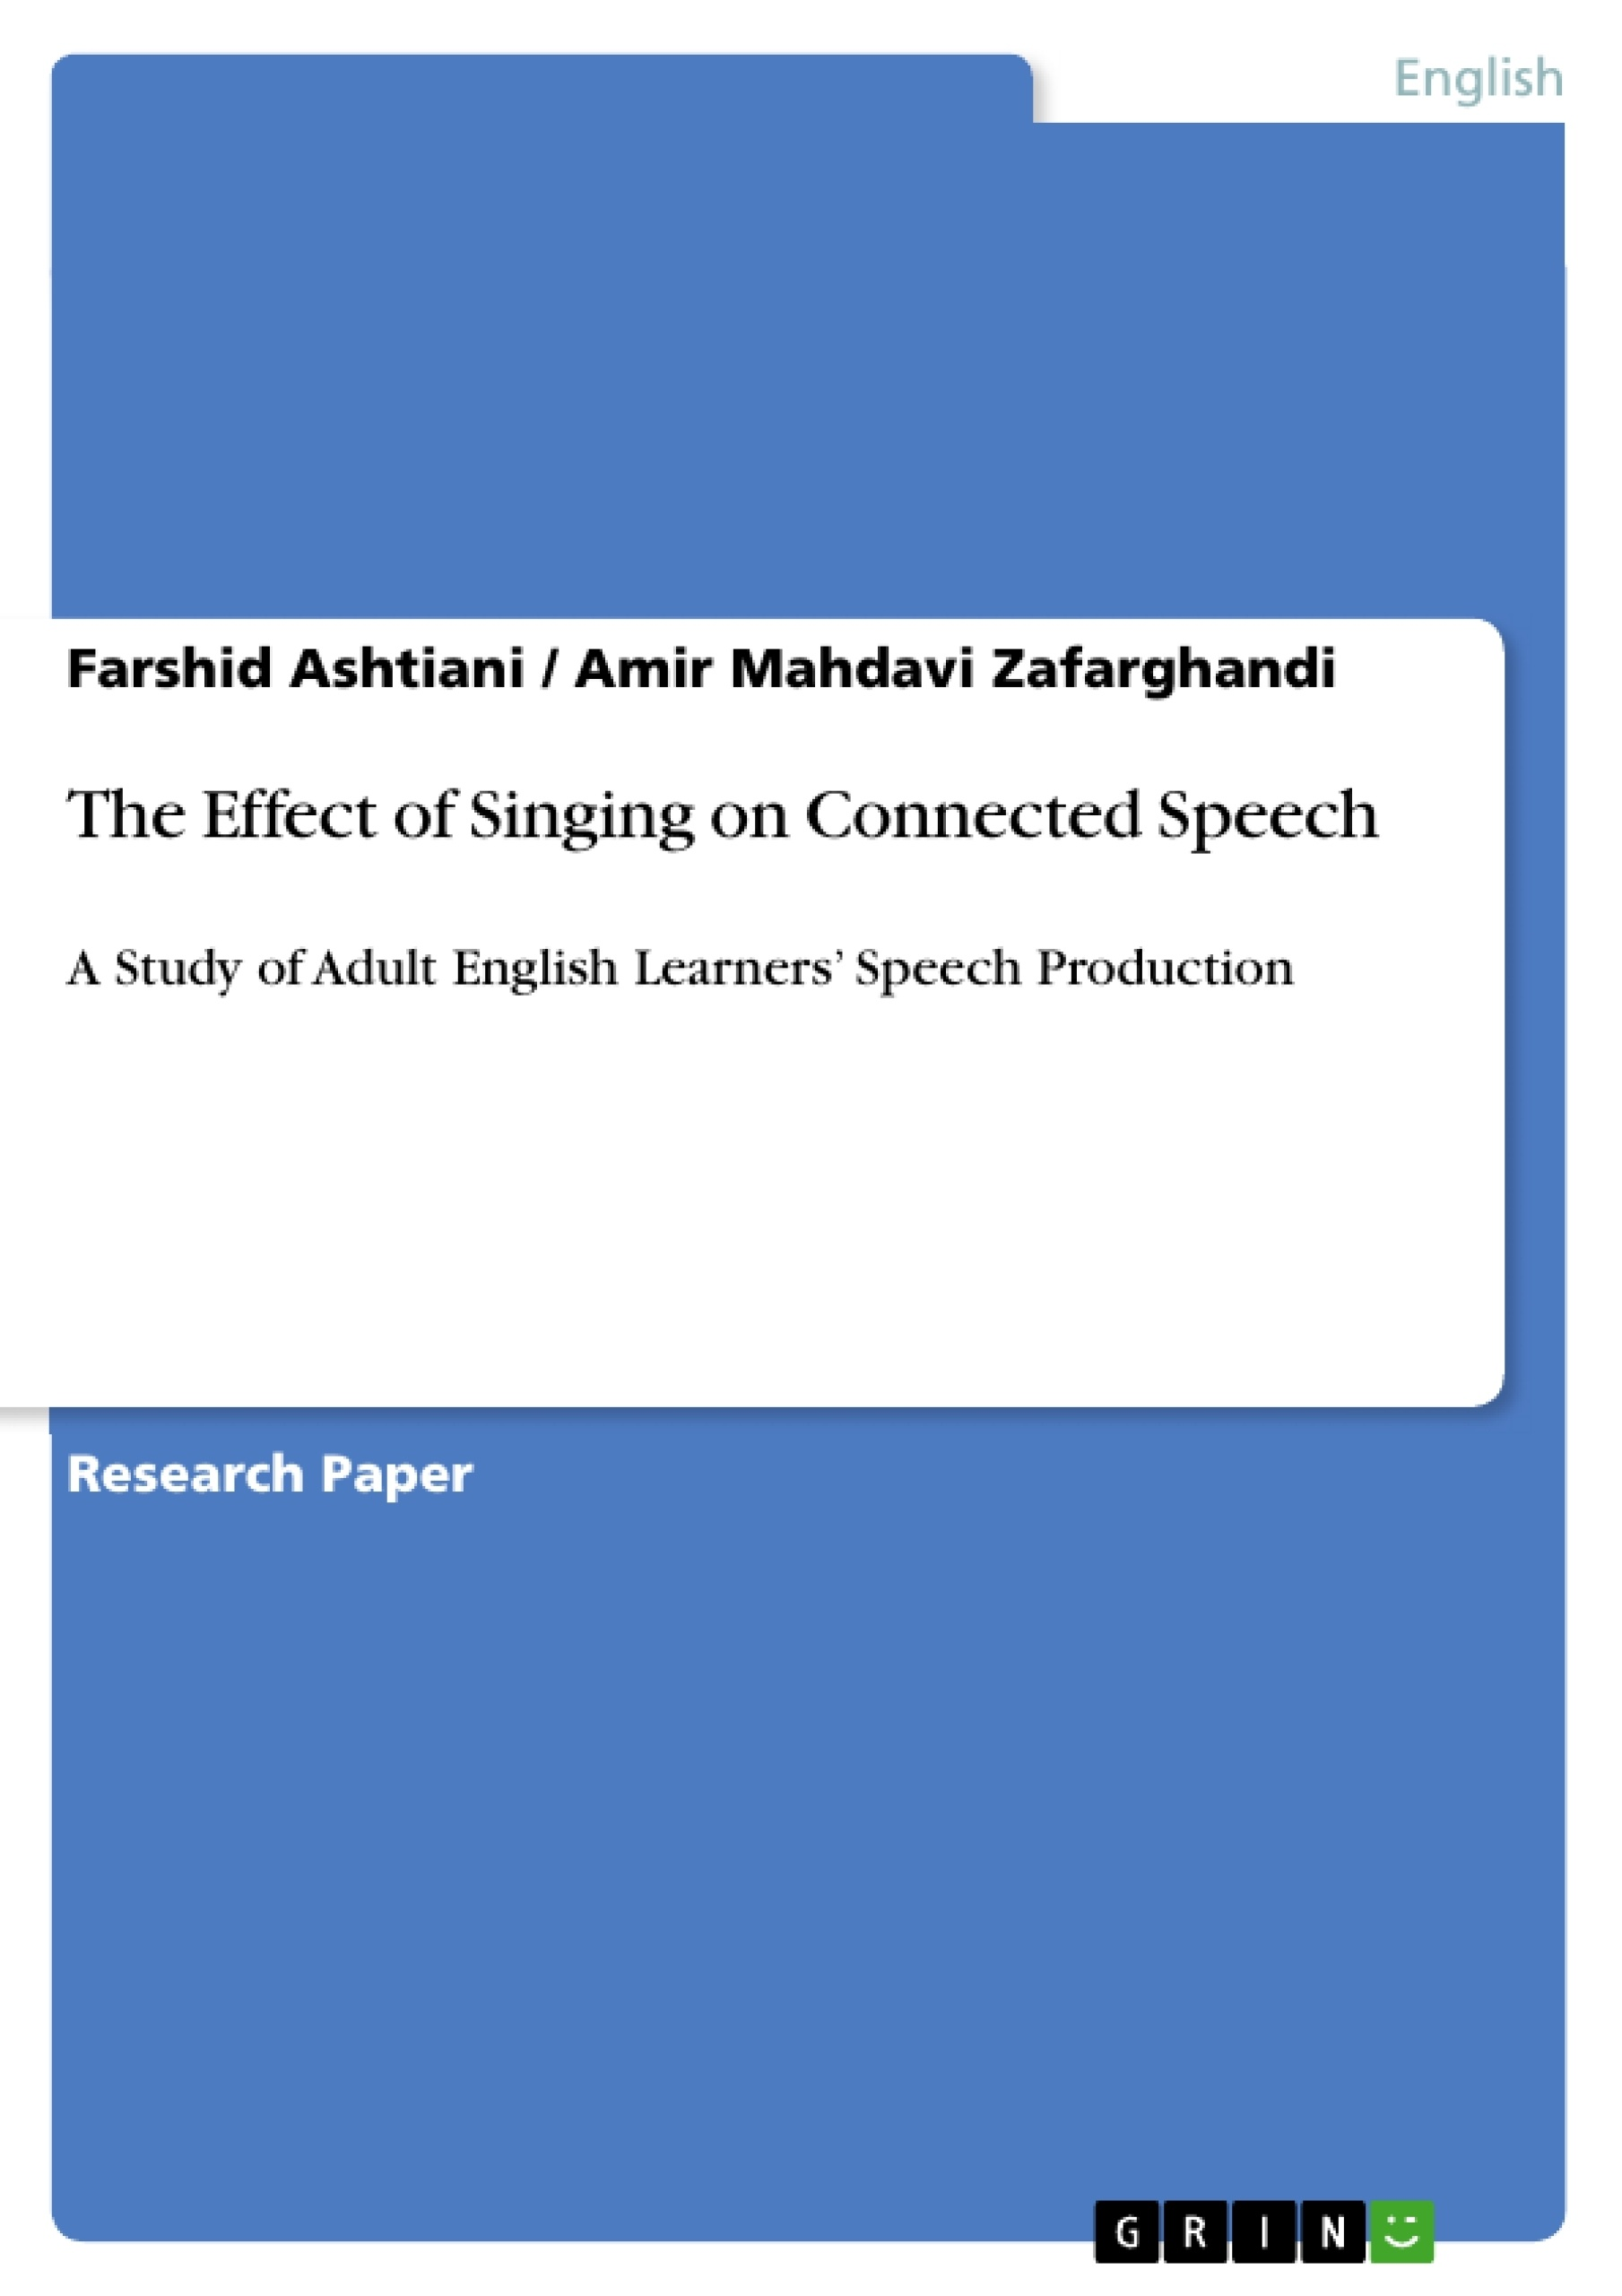 Title: The Effect of Singing on Connected Speech